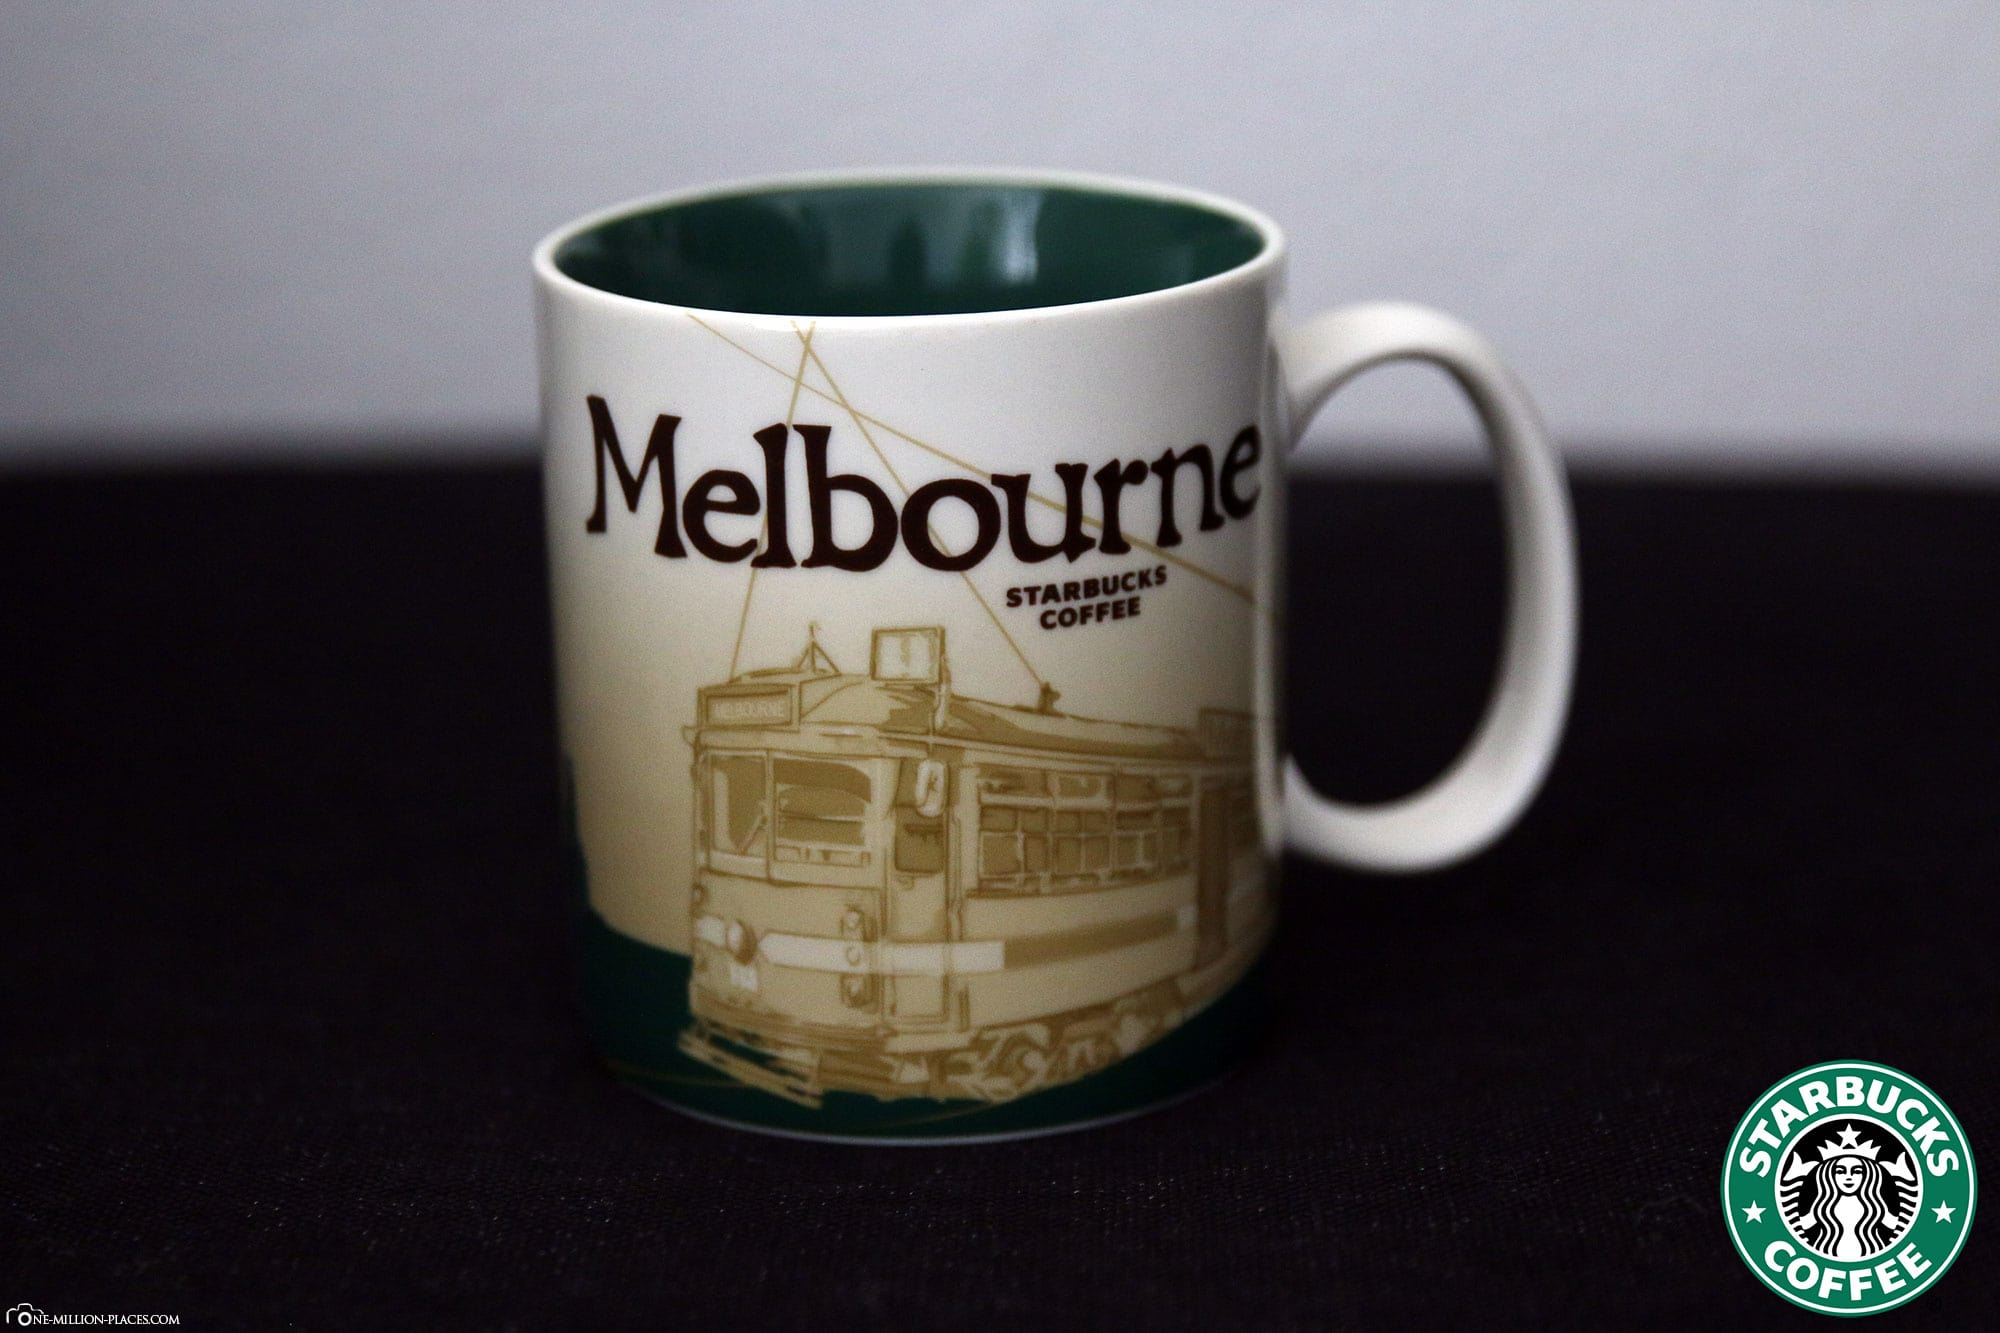 Melbourne, Starbucks Cup, Global Icon Series, City Mugs, Collection, Australia, Travelreport